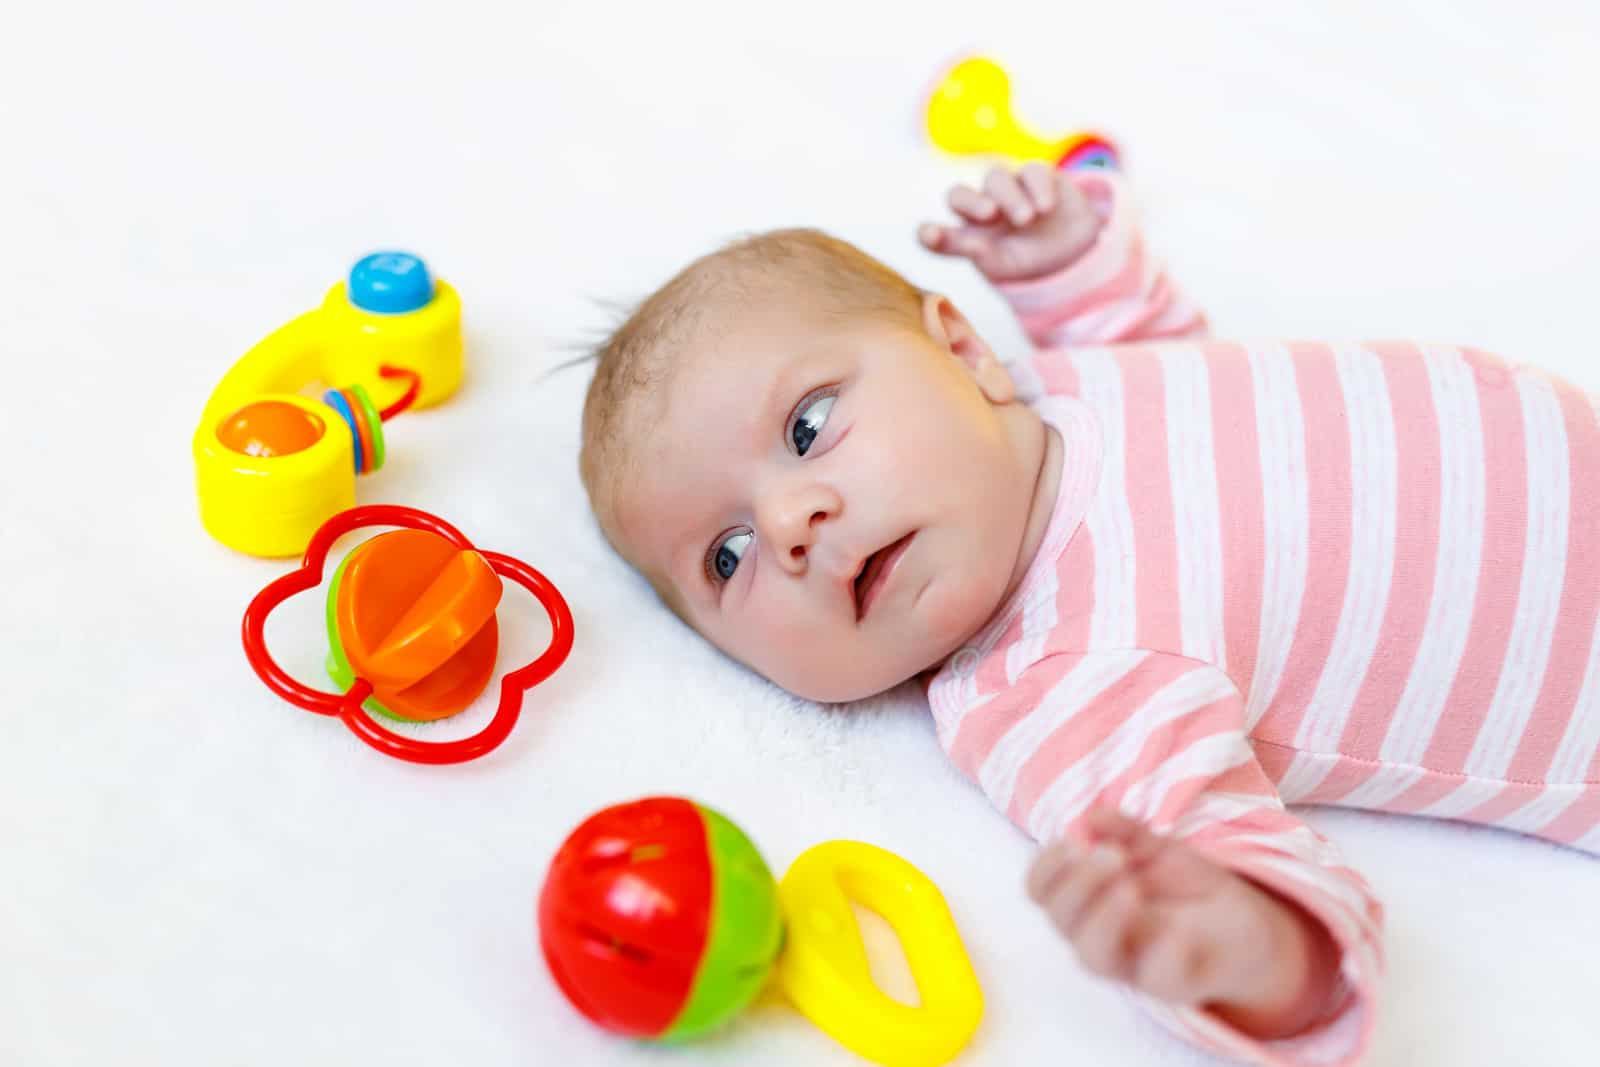 Cute baby girl playing with colorful rattle toys